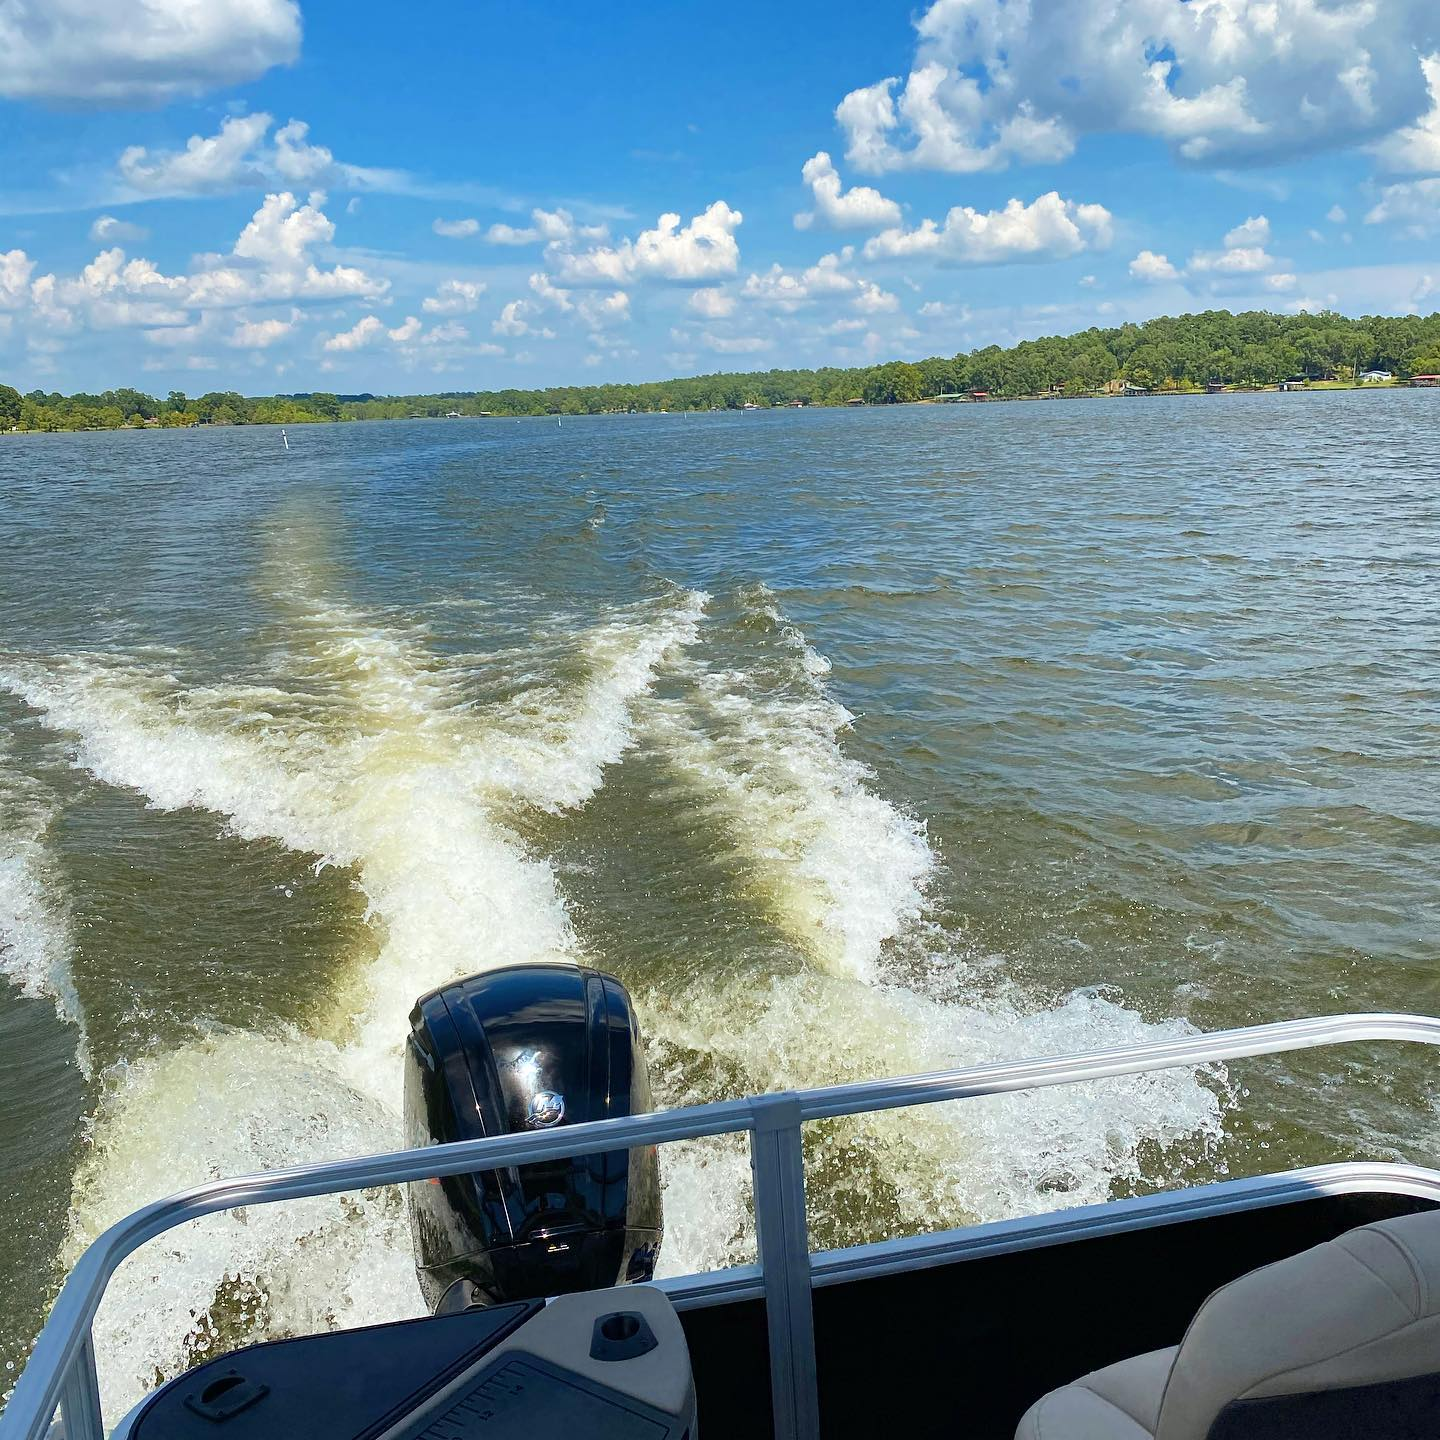 On the pontoon-Making waves and catching rays. The lake is open and ready! #pontoonboat #catchingwaves #ridingboats #lakefun